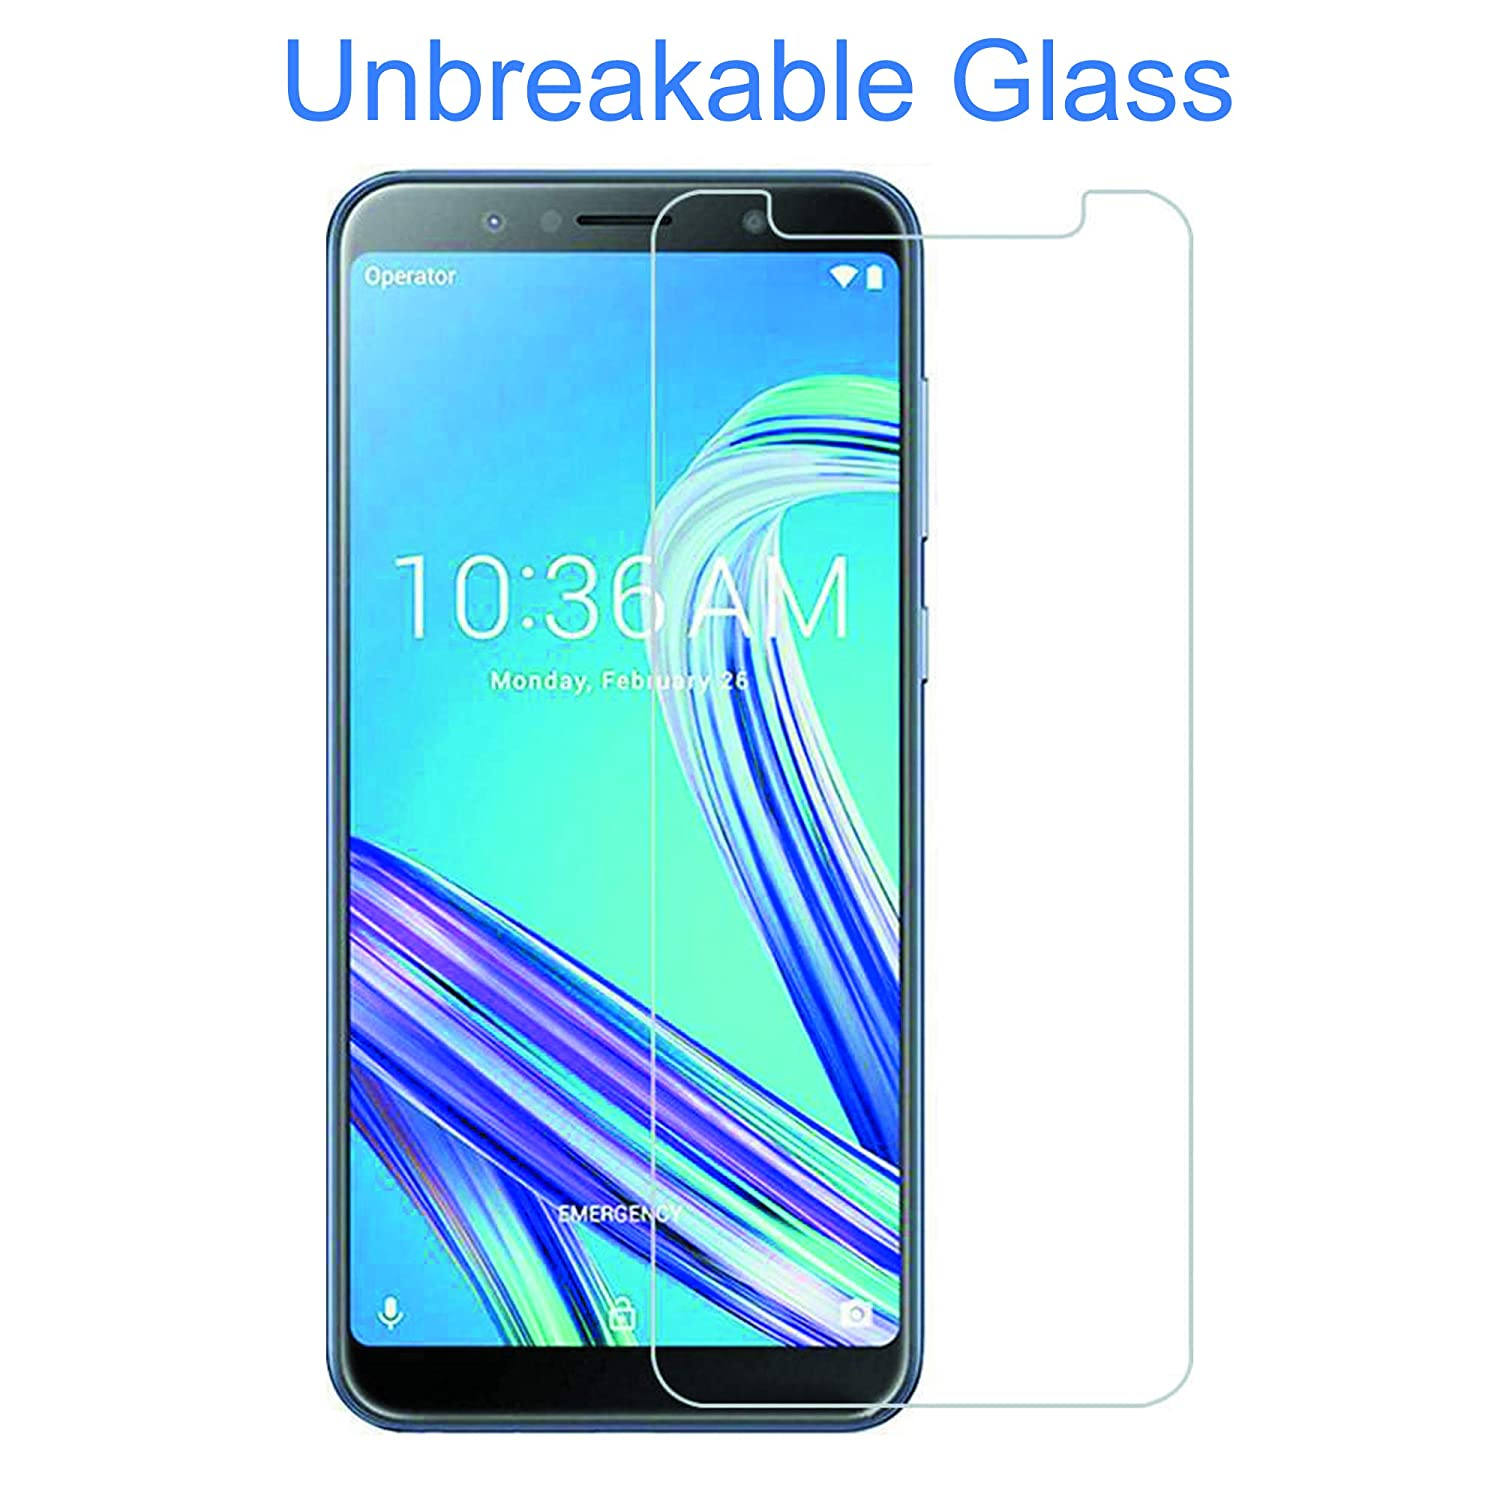 Pinglou Unbreakable Flexible Glass Screen Guard for: Amazon in